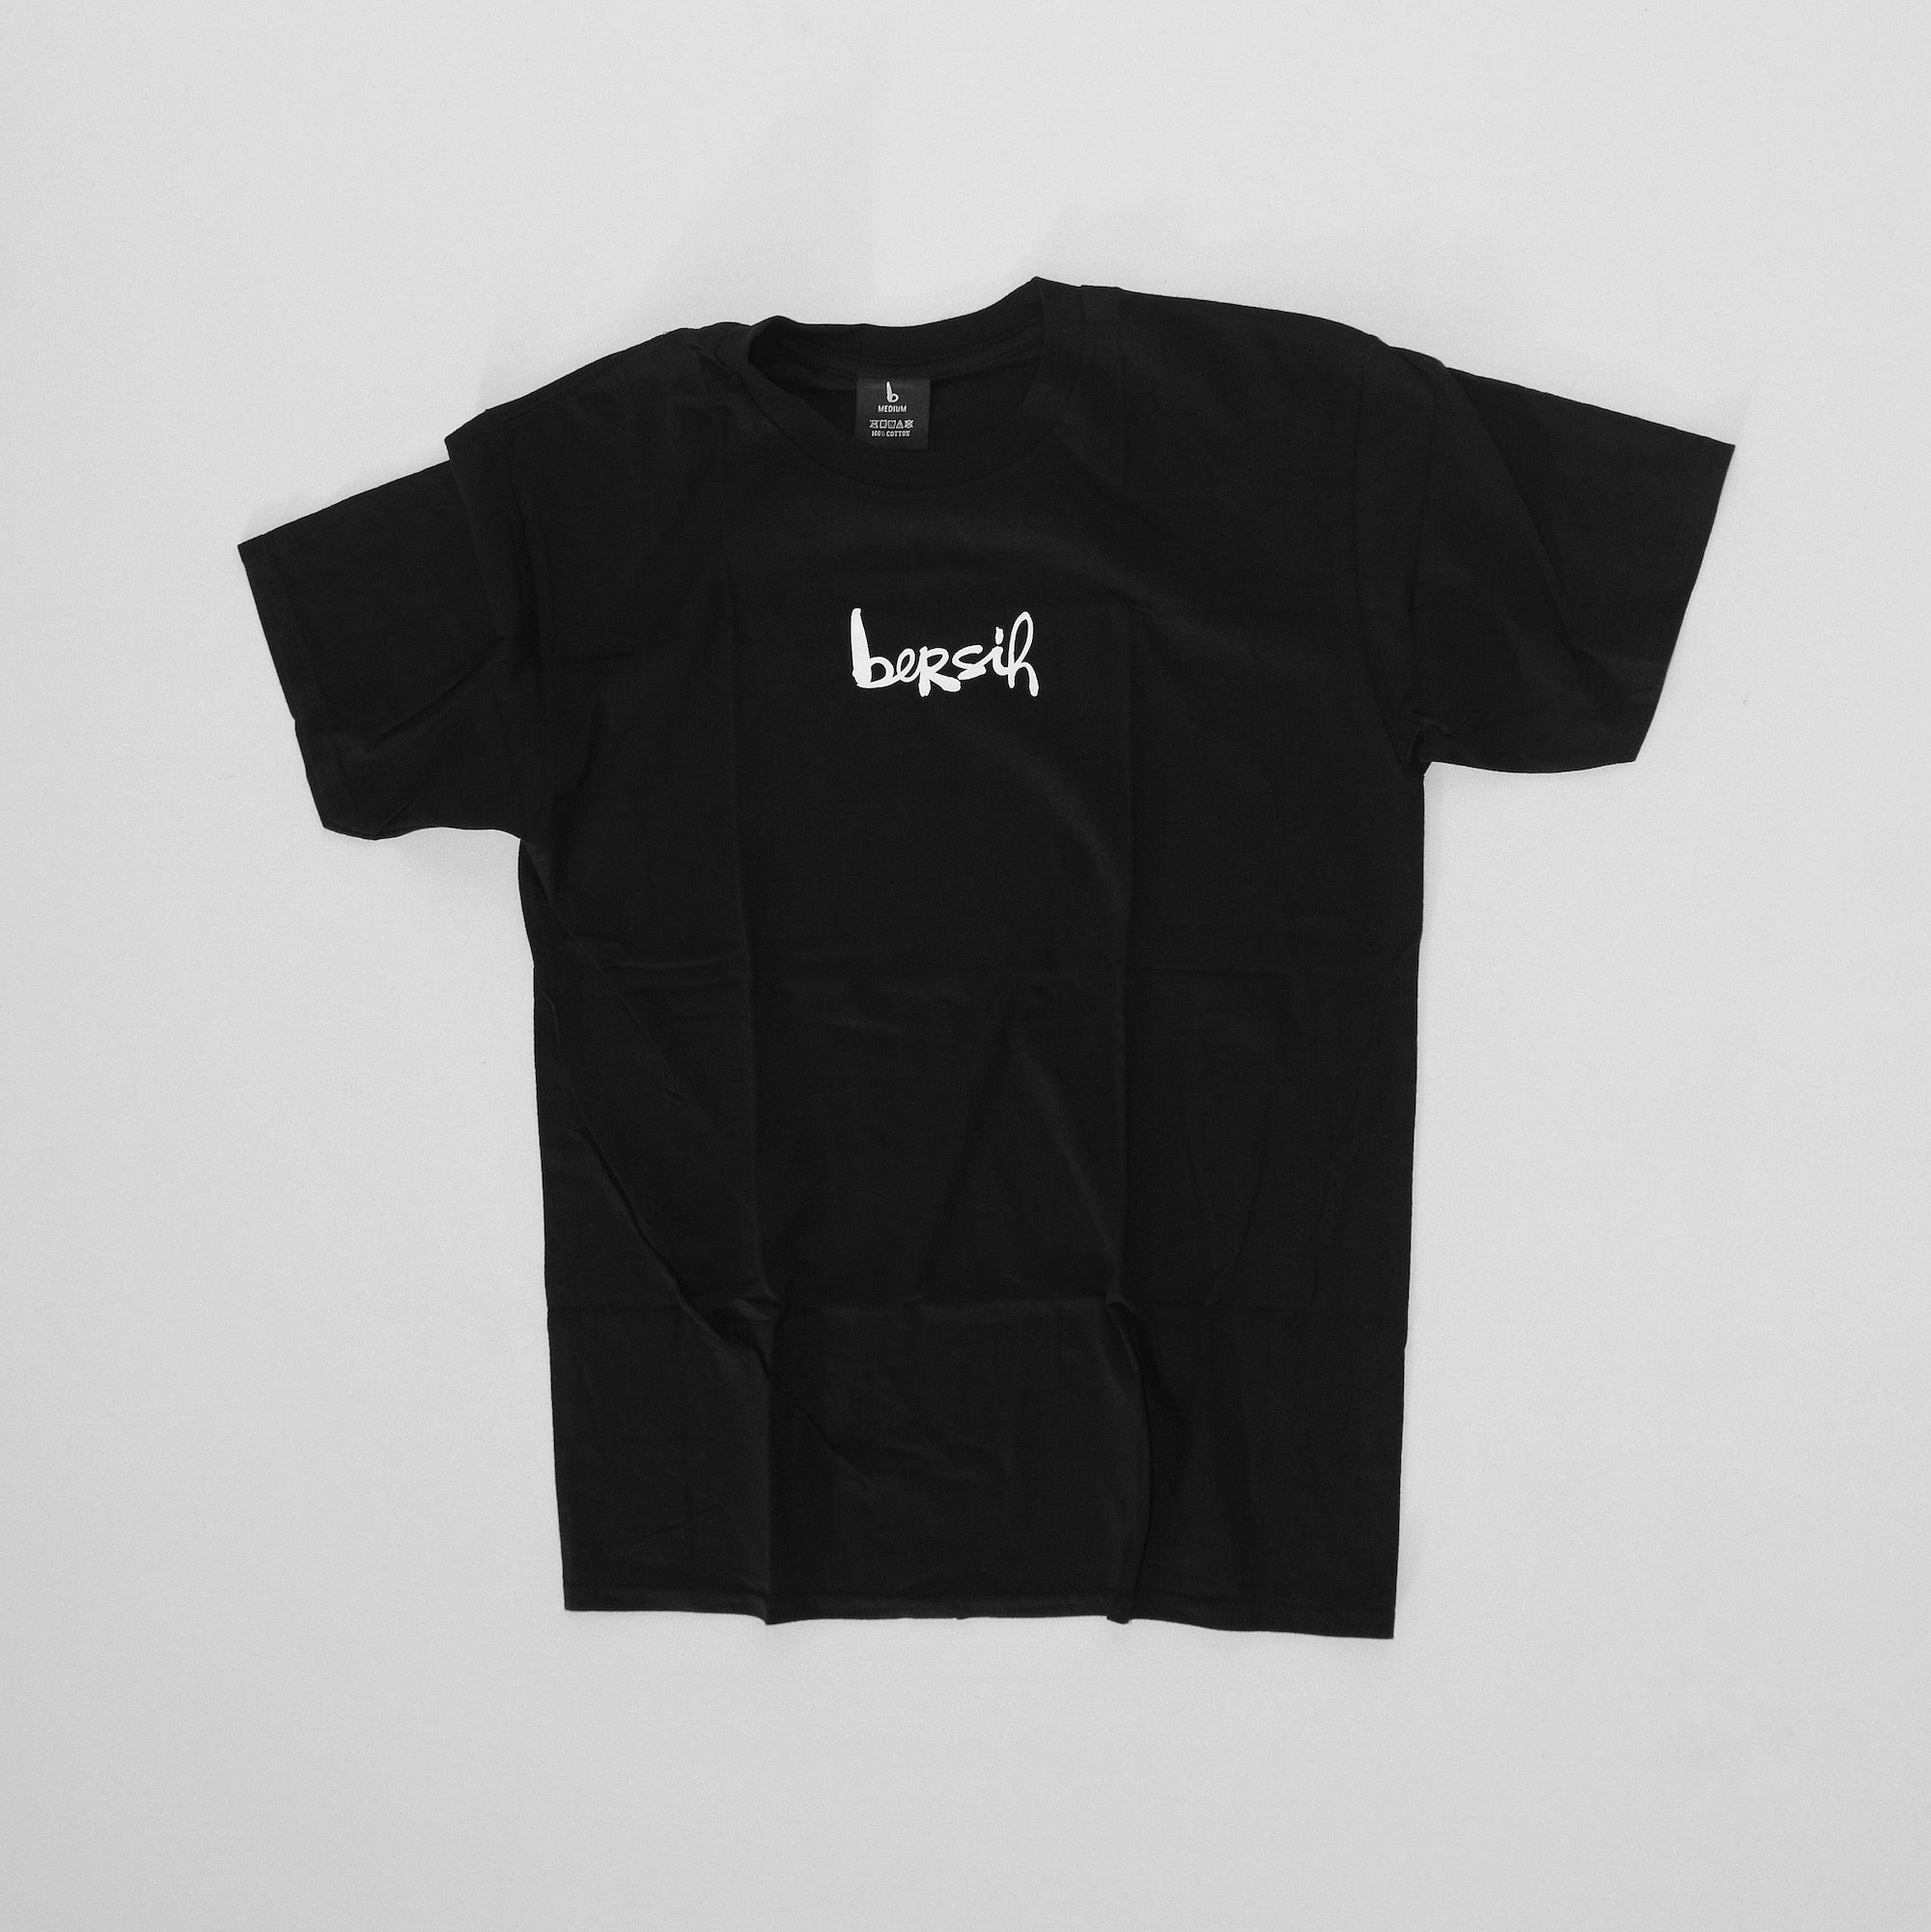 Original brush script logo T-shirt